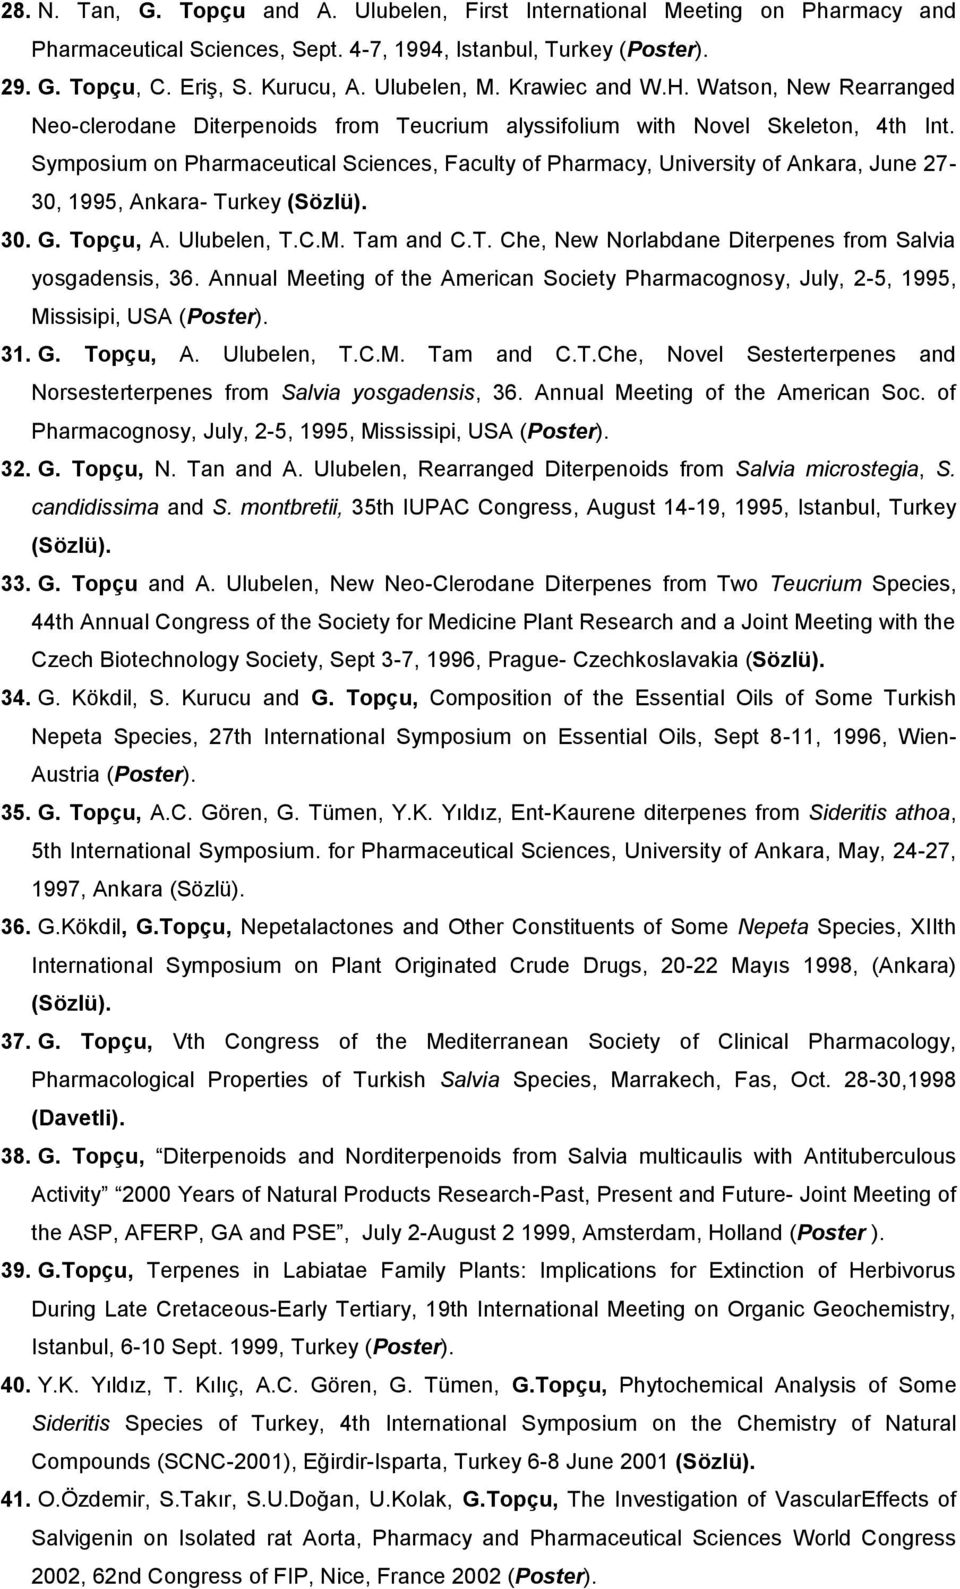 Symposium on Pharmaceutical Sciences, Faculty of Pharmacy, University of Ankara, June 27-30, 1995, Ankara- Turkey (Sözlü). 30. G. Topçu, A. Ulubelen, T.C.M. Tam and C.T. Che, New Norlabdane Diterpenes from Salvia yosgadensis, 36.